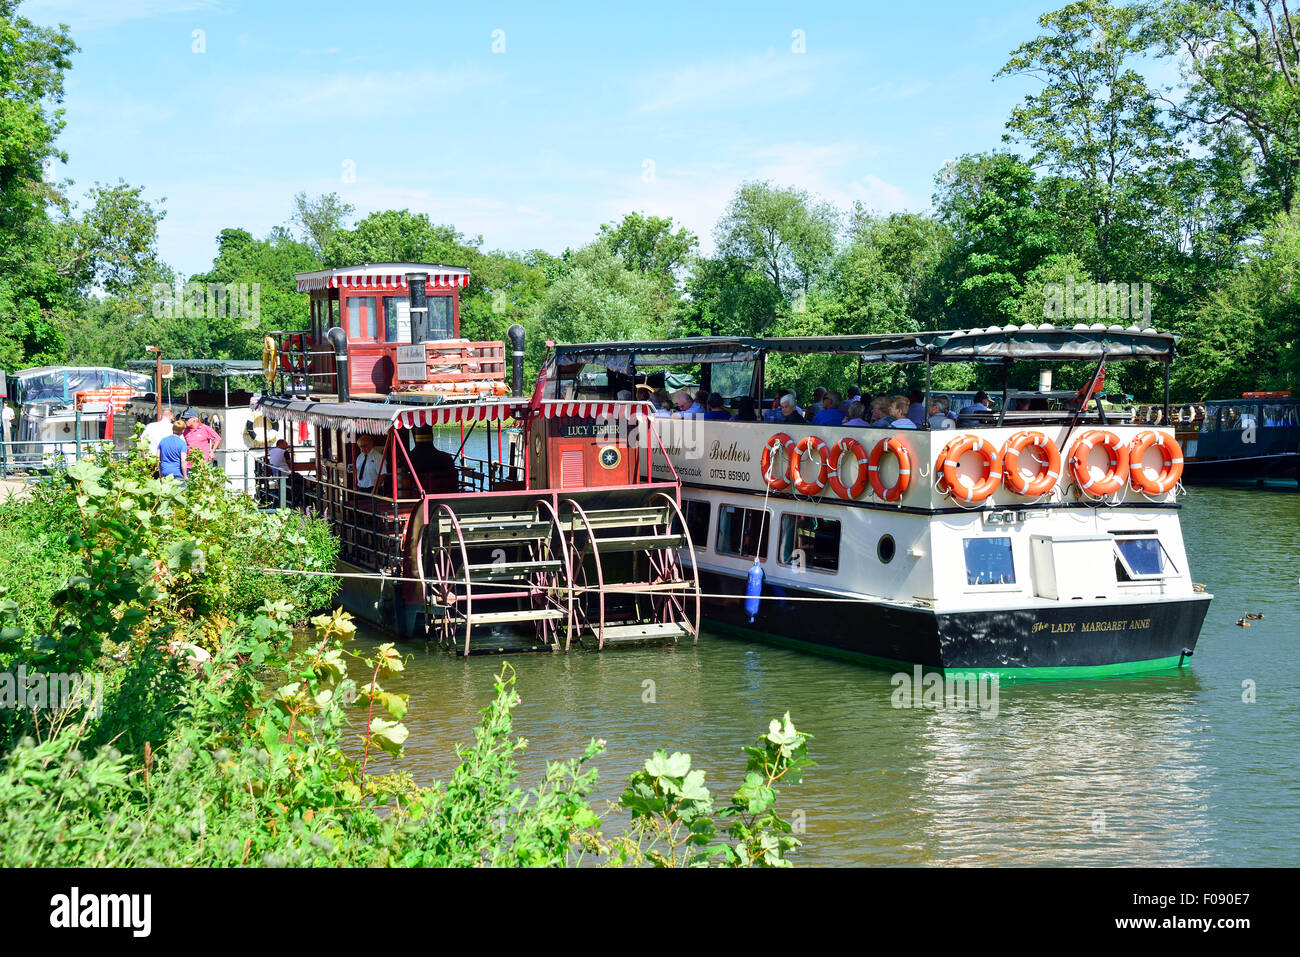 French Brothers River Thames cruise boats, Runnymede, Surrey, England, United Kingdom - Stock Image